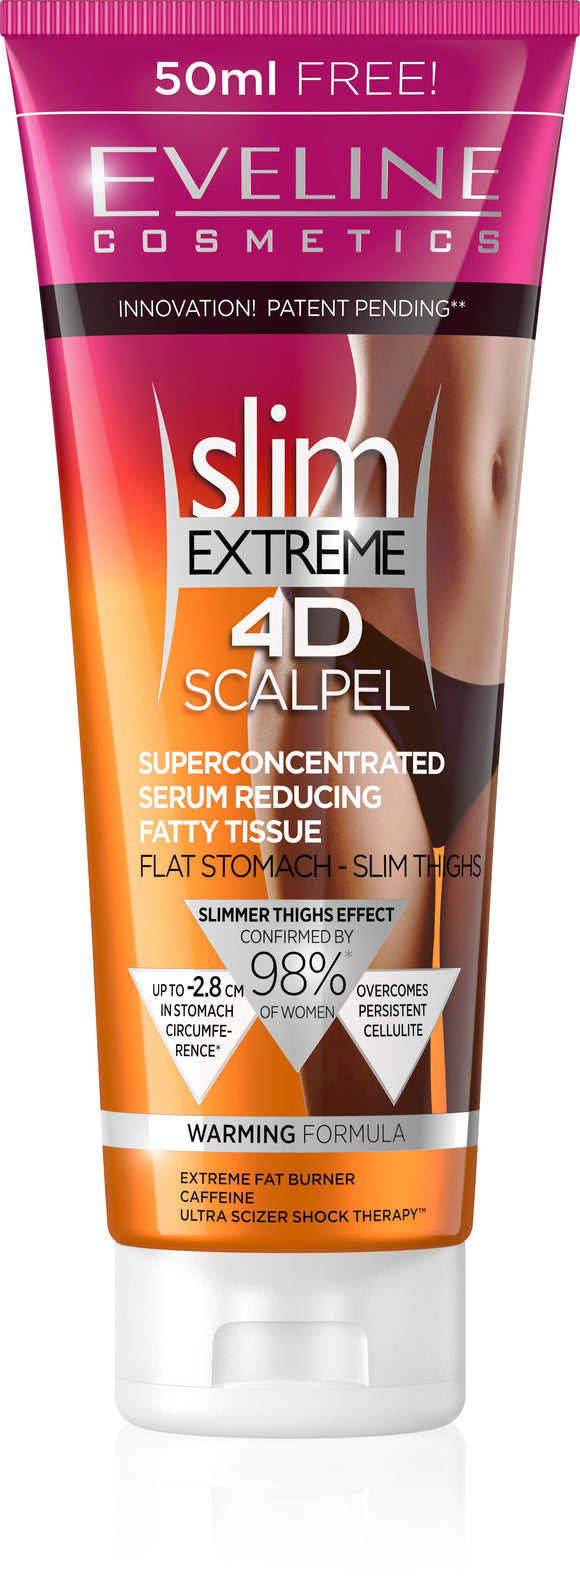 Eveline Slim EXTREME 4D Scalpel Super Concentrated Fat Reducing Serum 250 ml - mydrxm.com